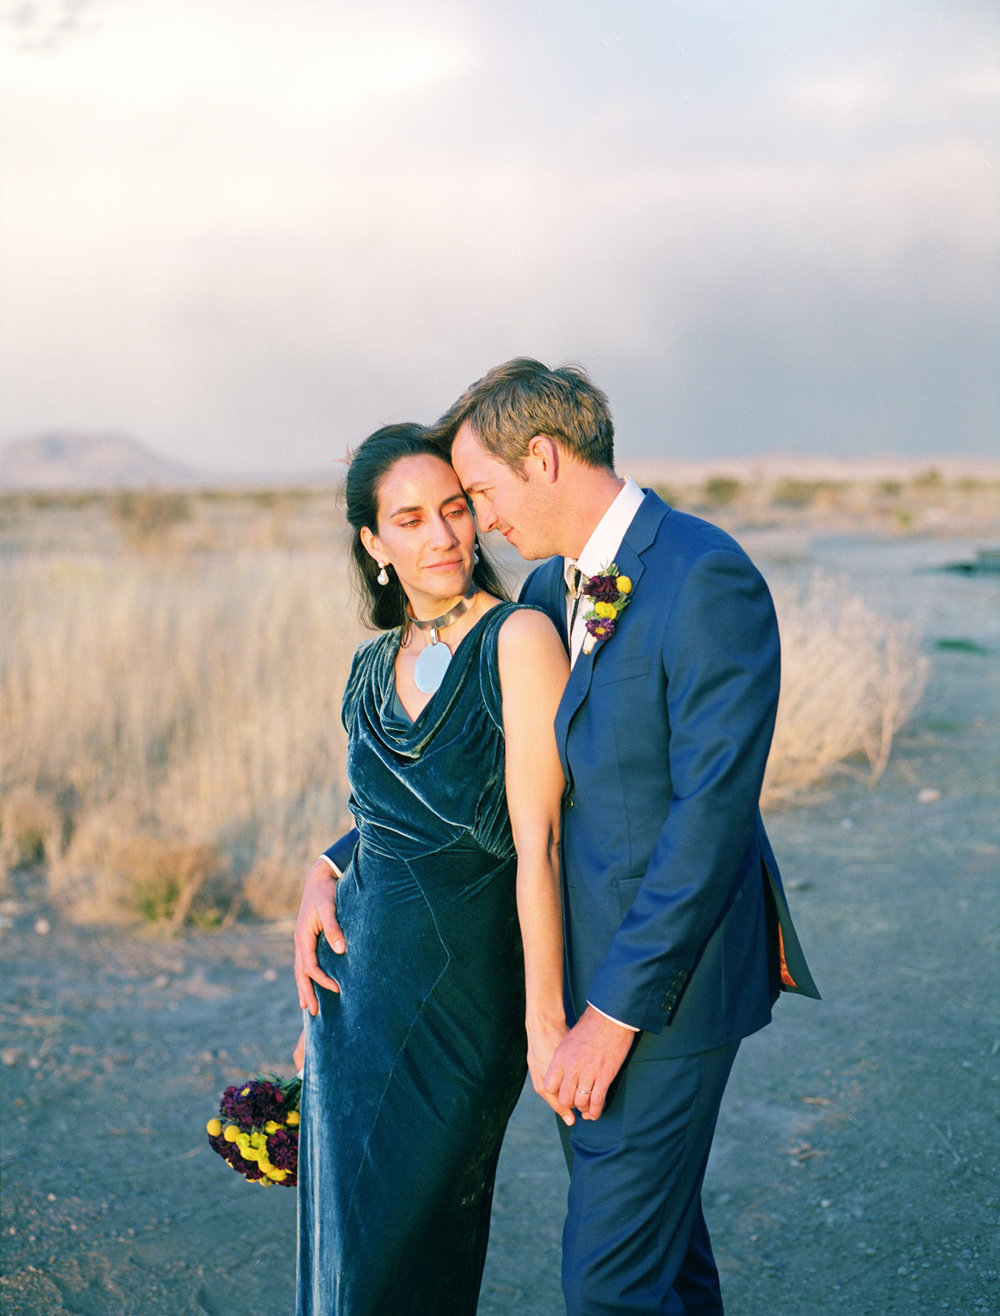 Alan + Taylor || An Intimate Wedding in Marfa, TX